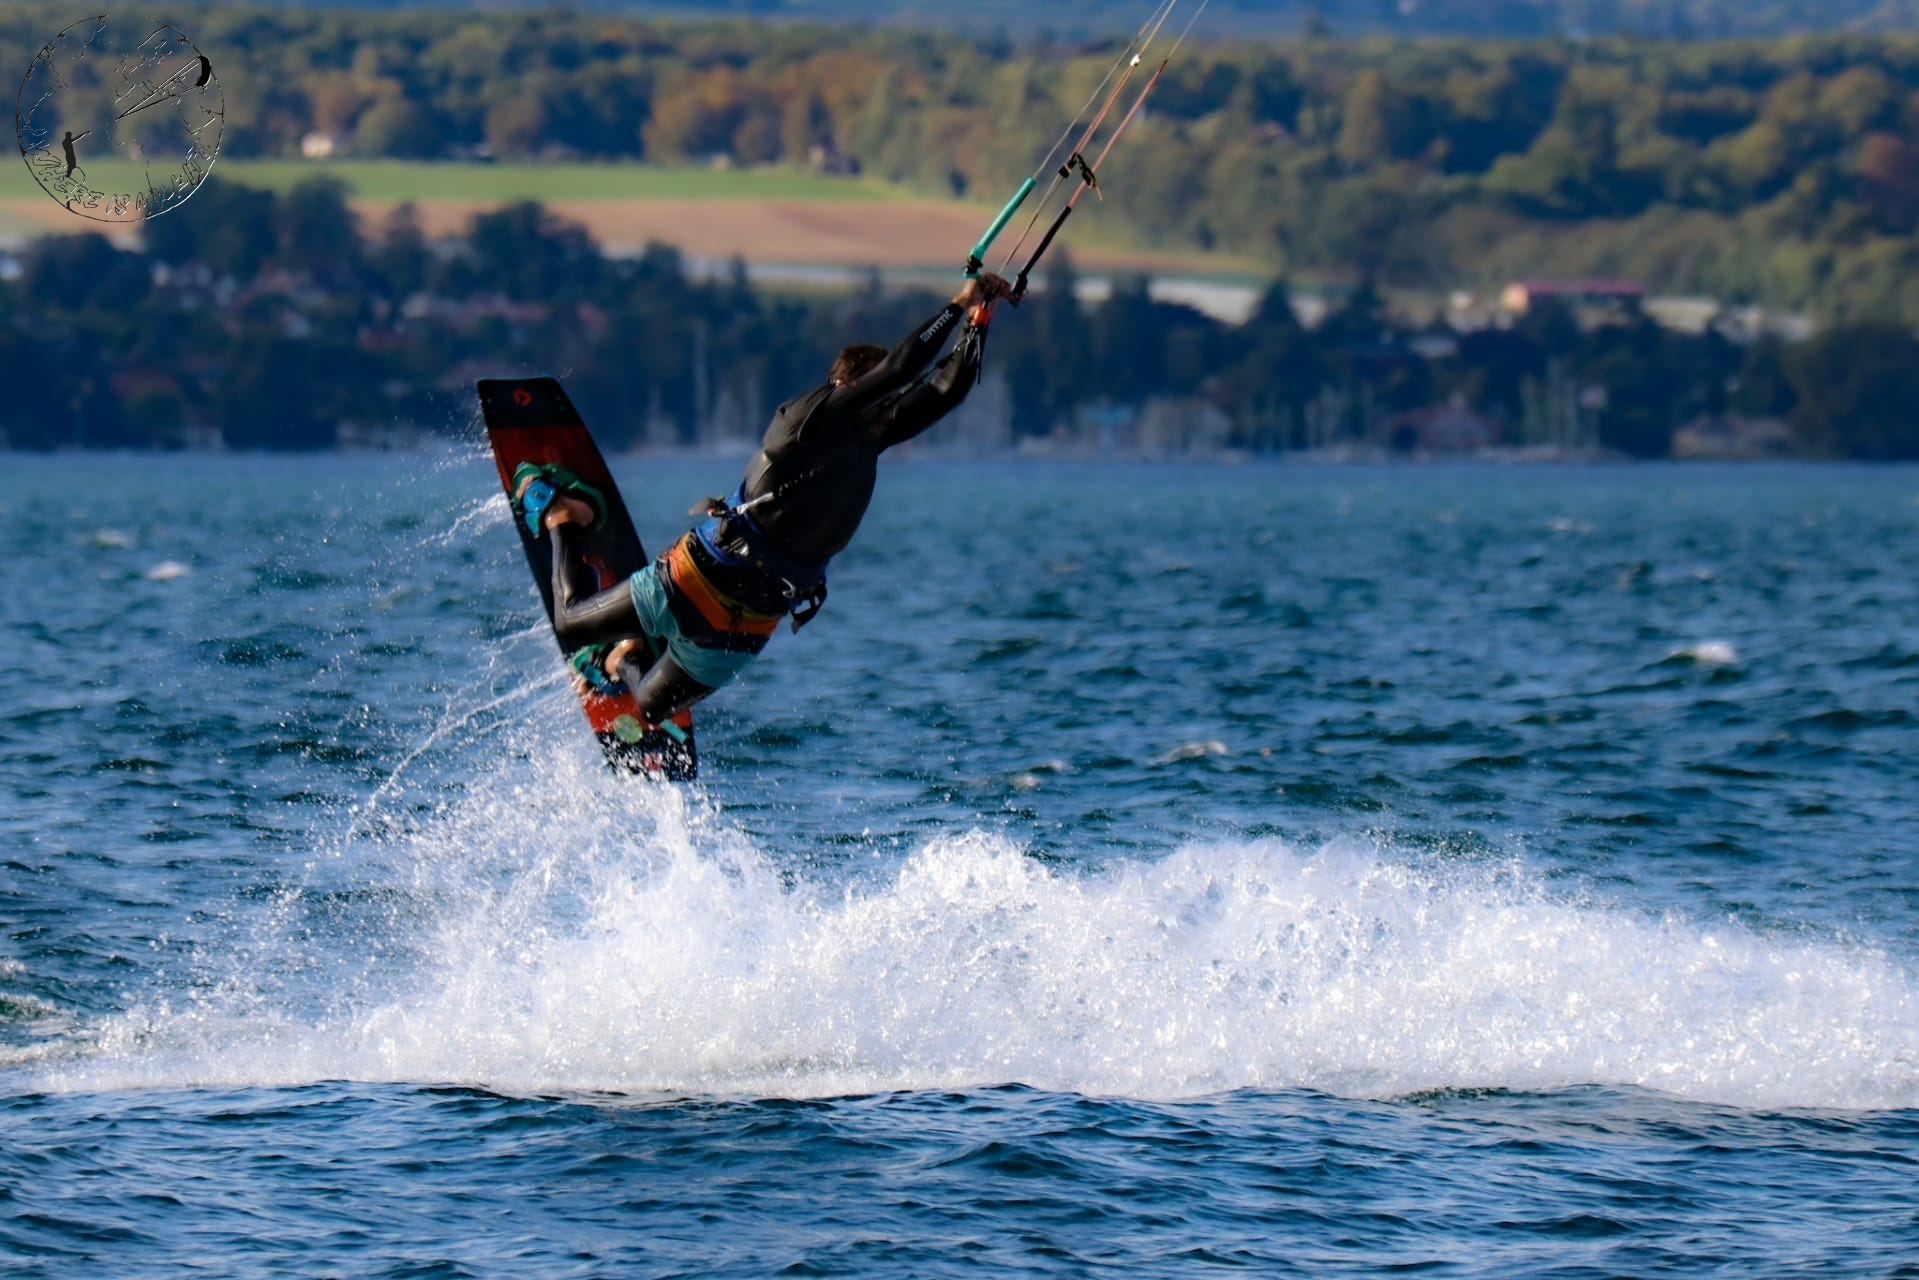 Home spot, kitesurf, Hermance, railey, déhooké, twin tip, freestyle